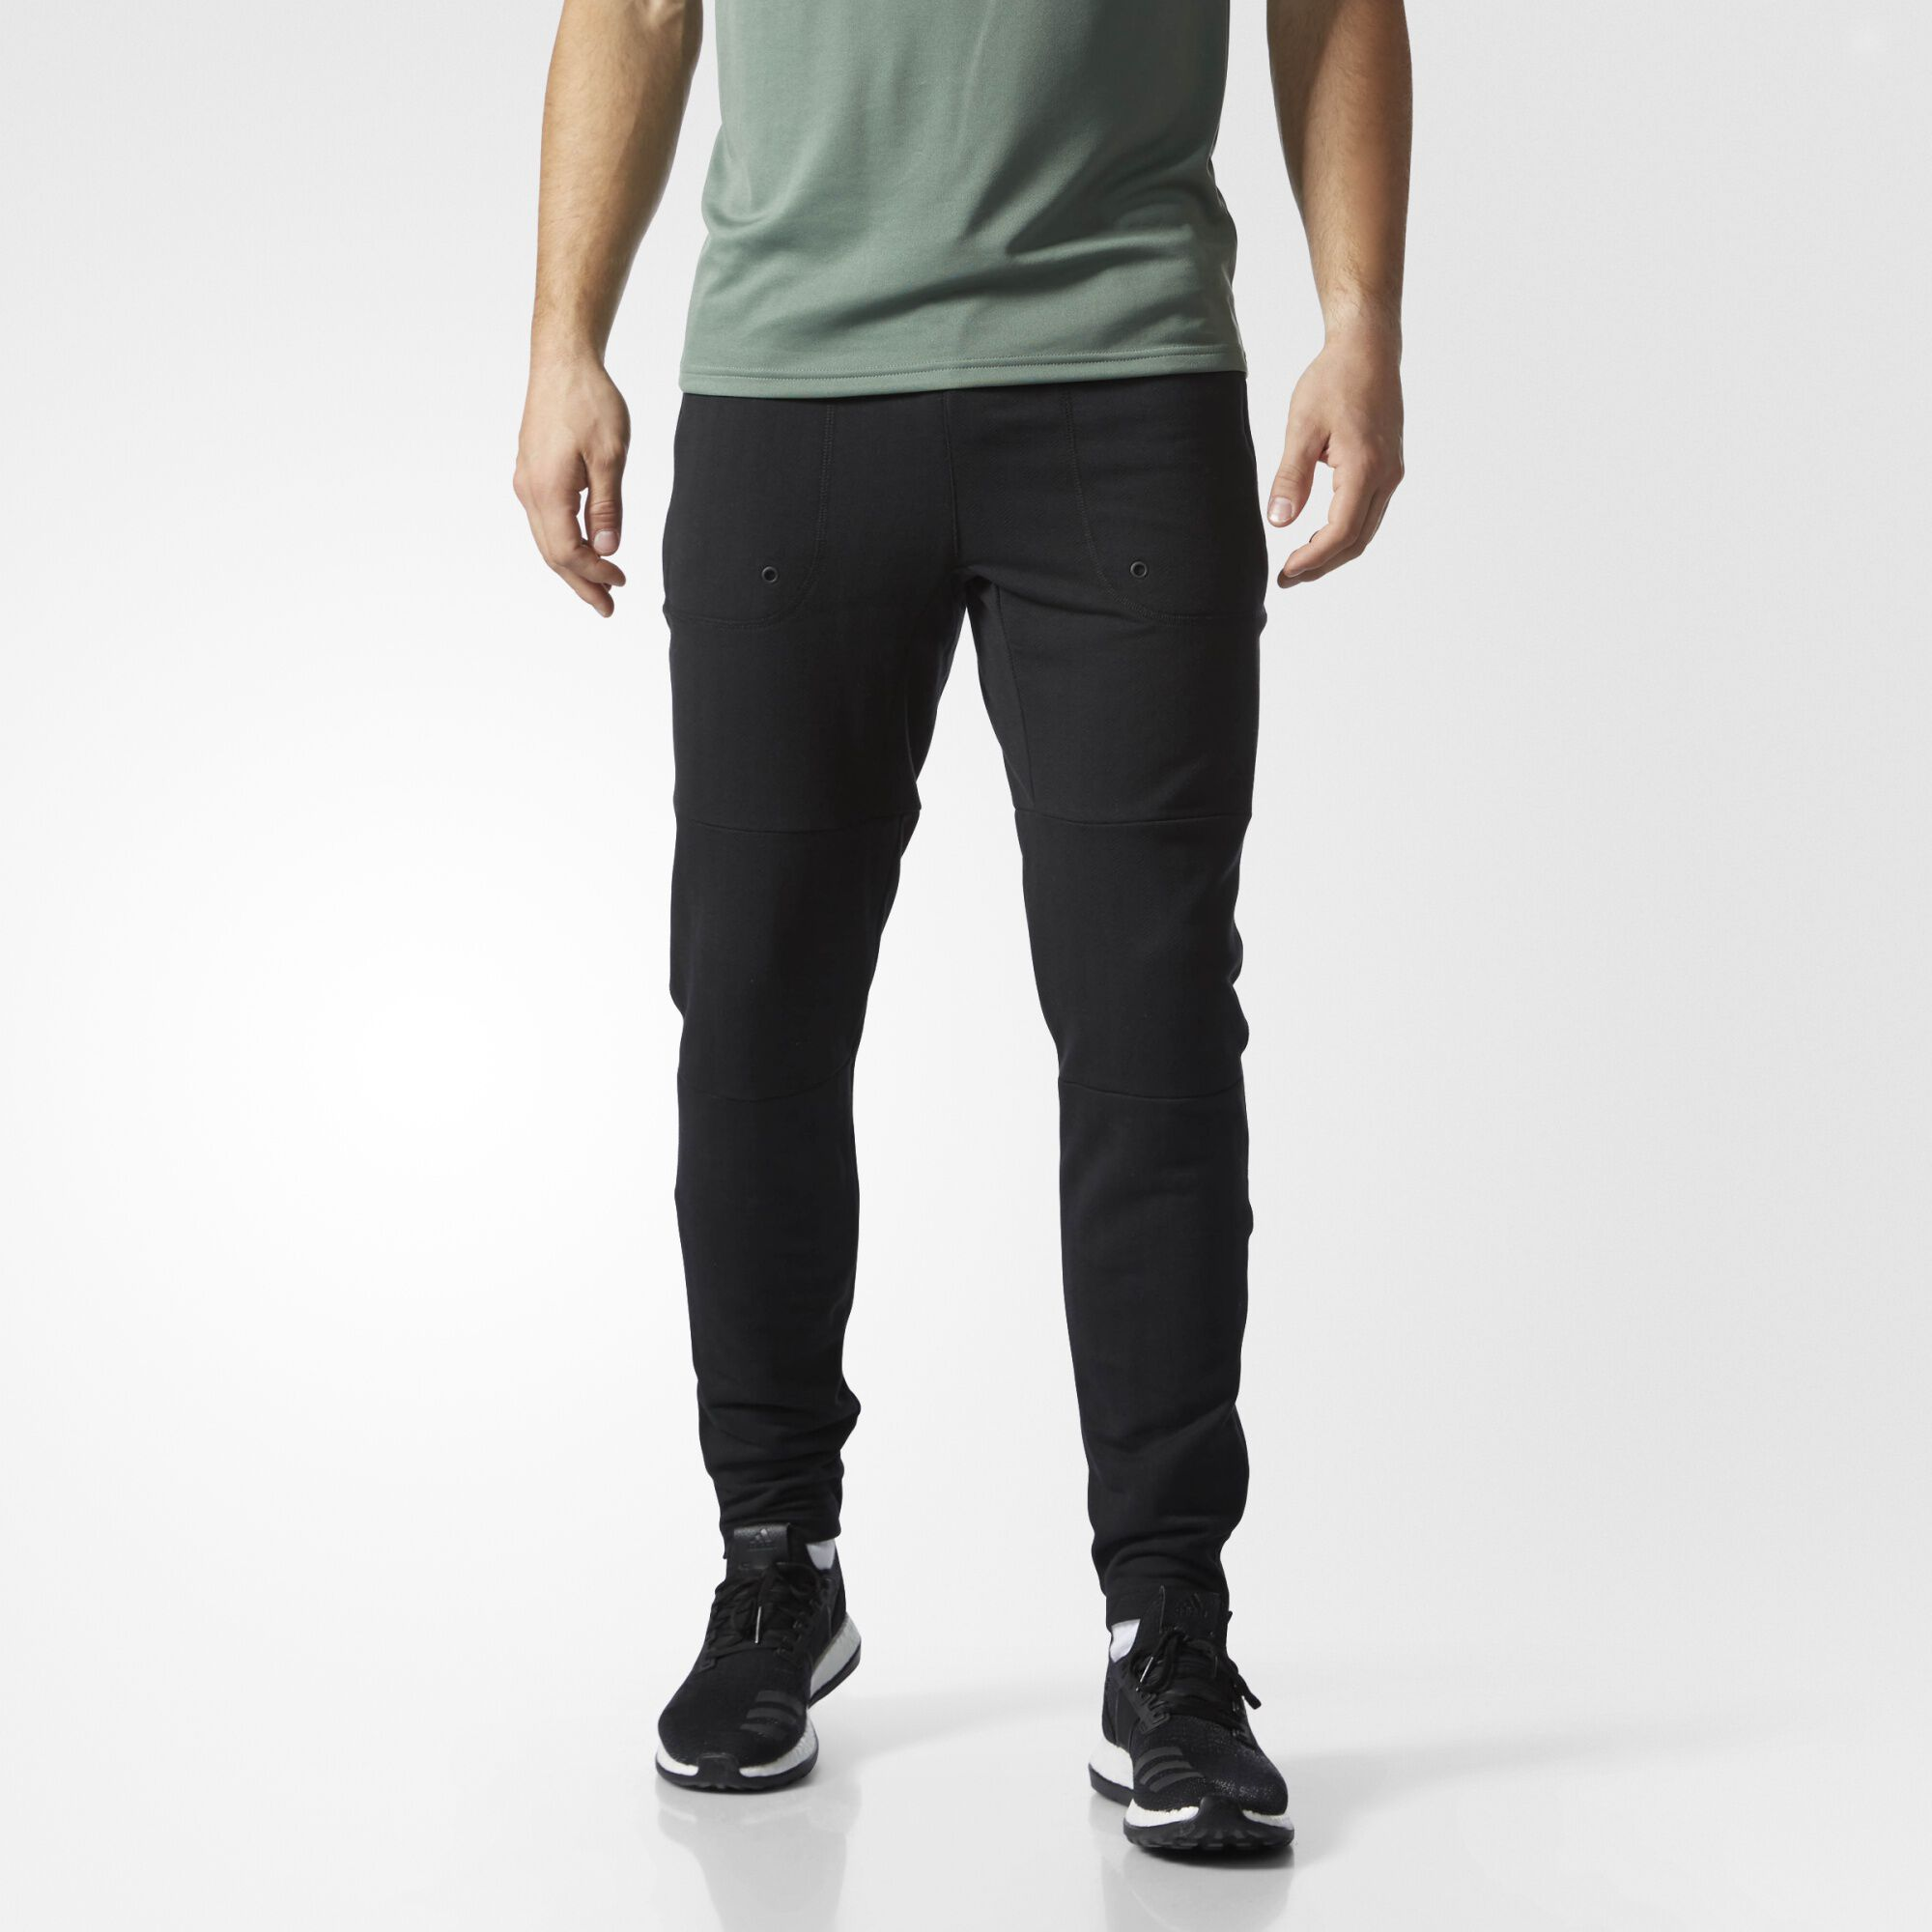 adidas slim fit track pants